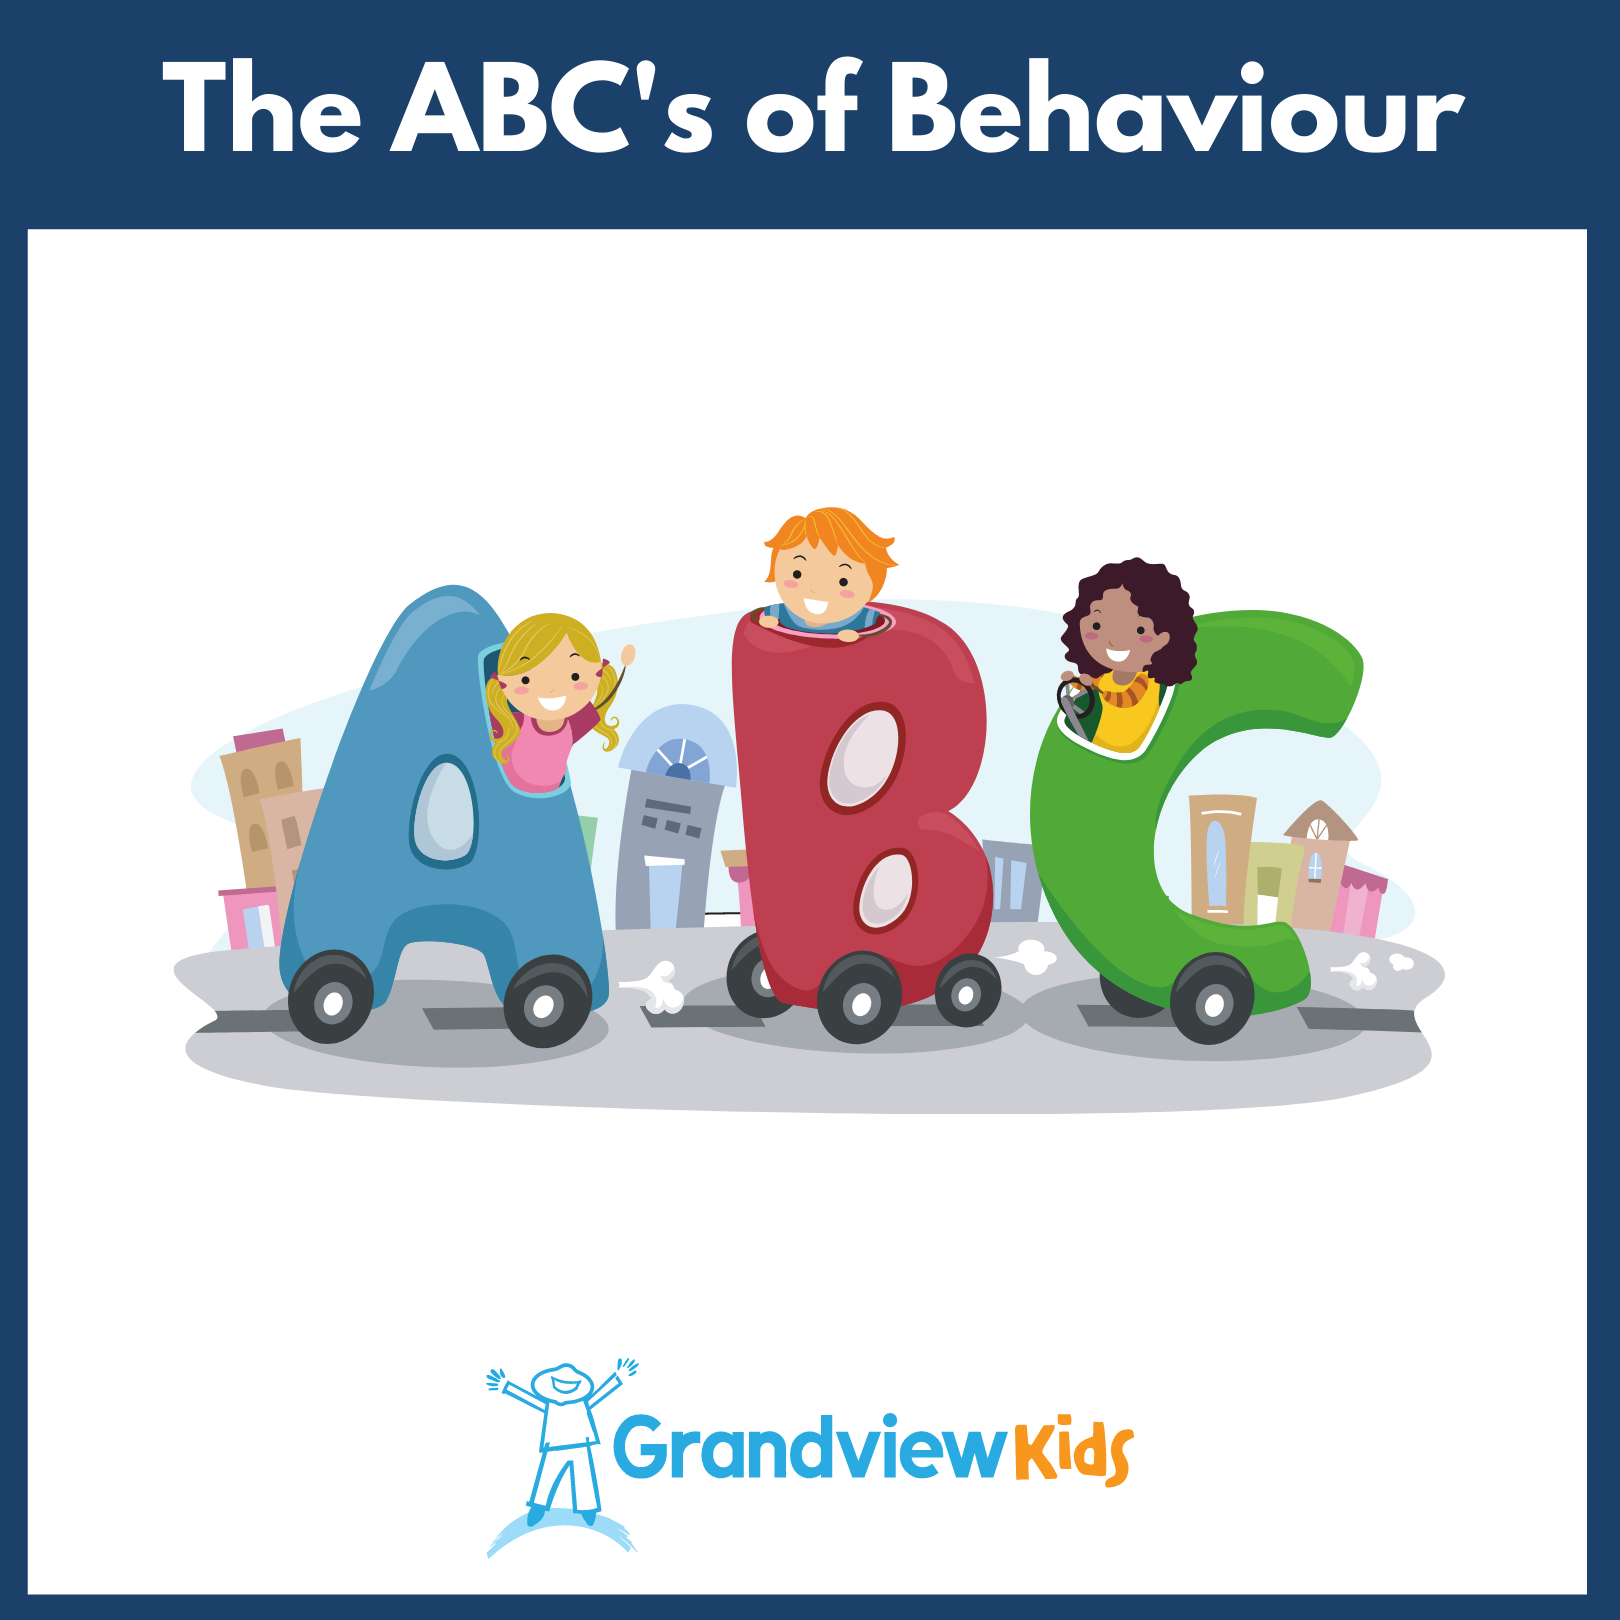 Illustration of three children in cars that are shaped like the letters 'a,' 'b,' and 'c'